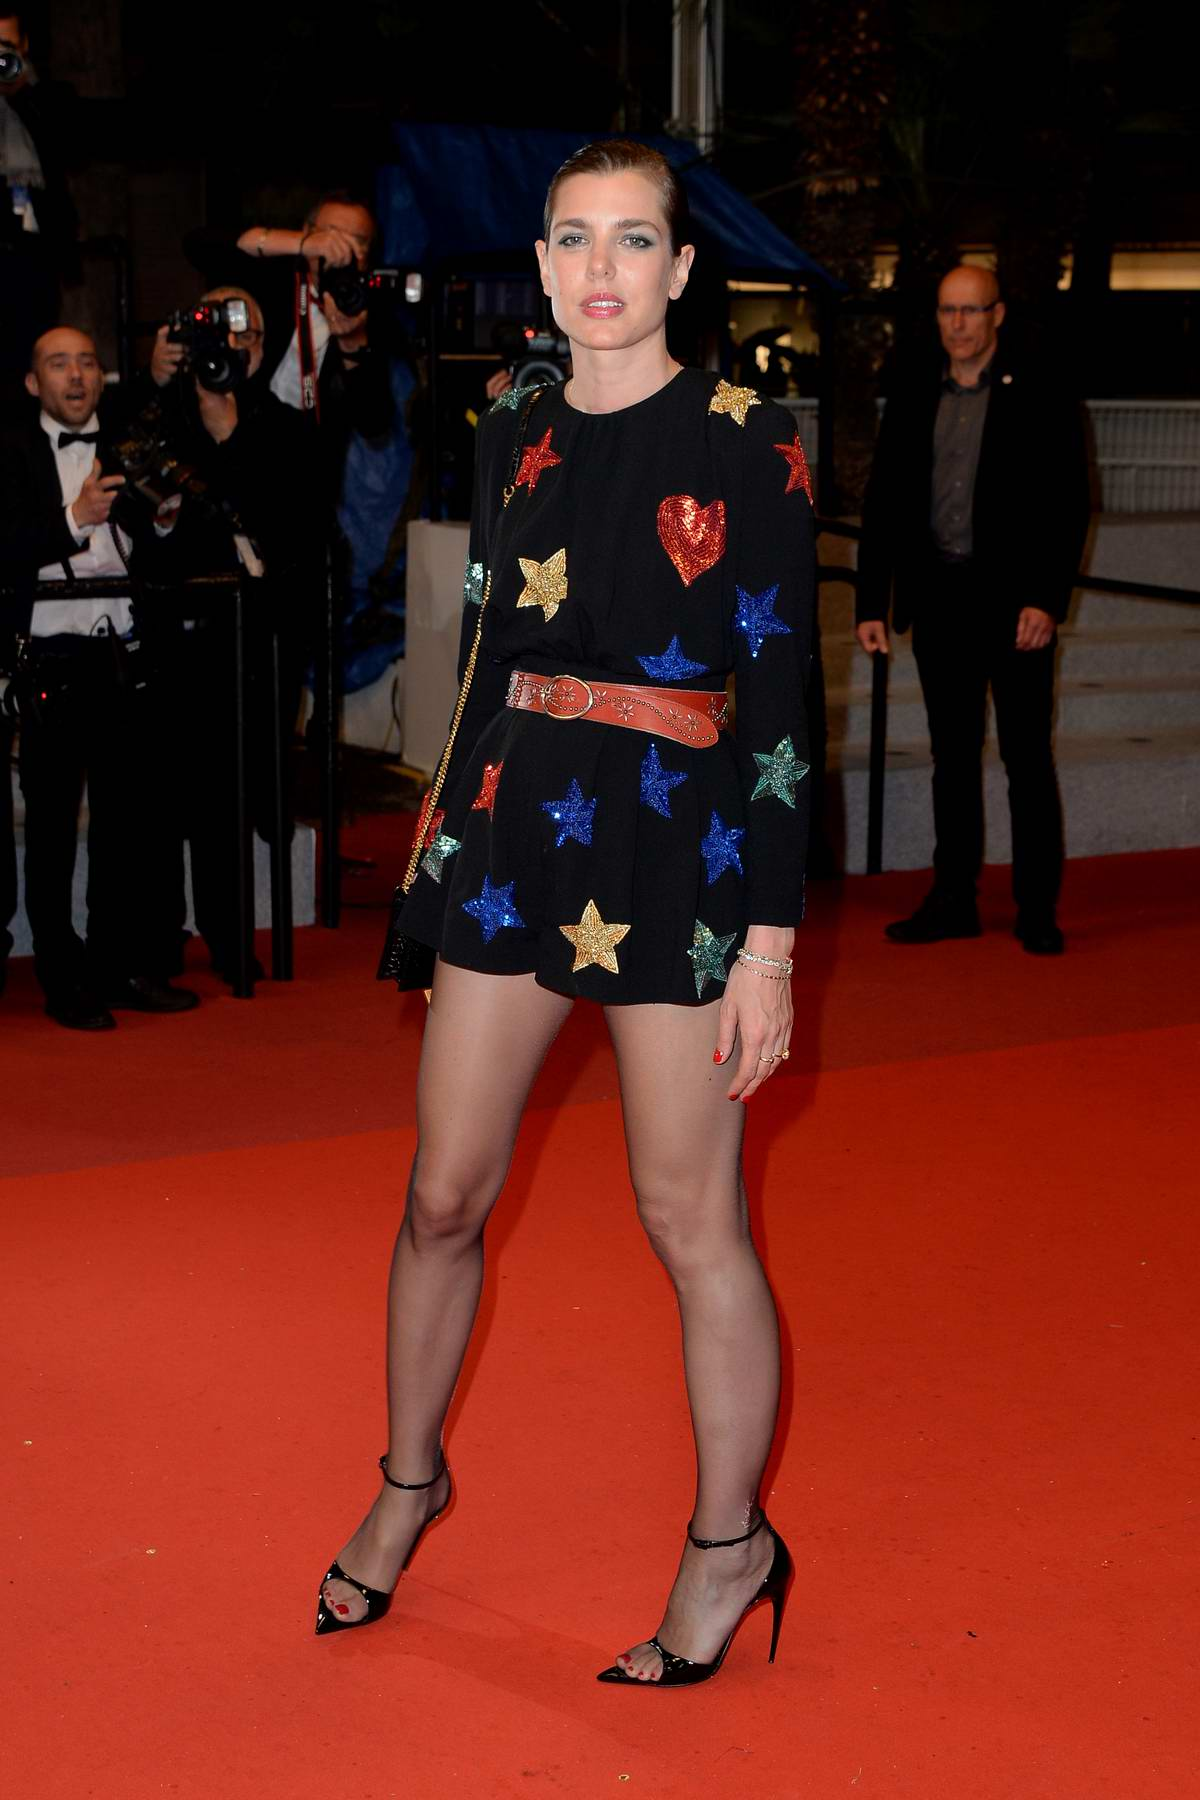 Charlotte Casiraghi attends the screening of 'Lux Aeterna' during the 72nd annual Cannes Film Festival in Cannes, France